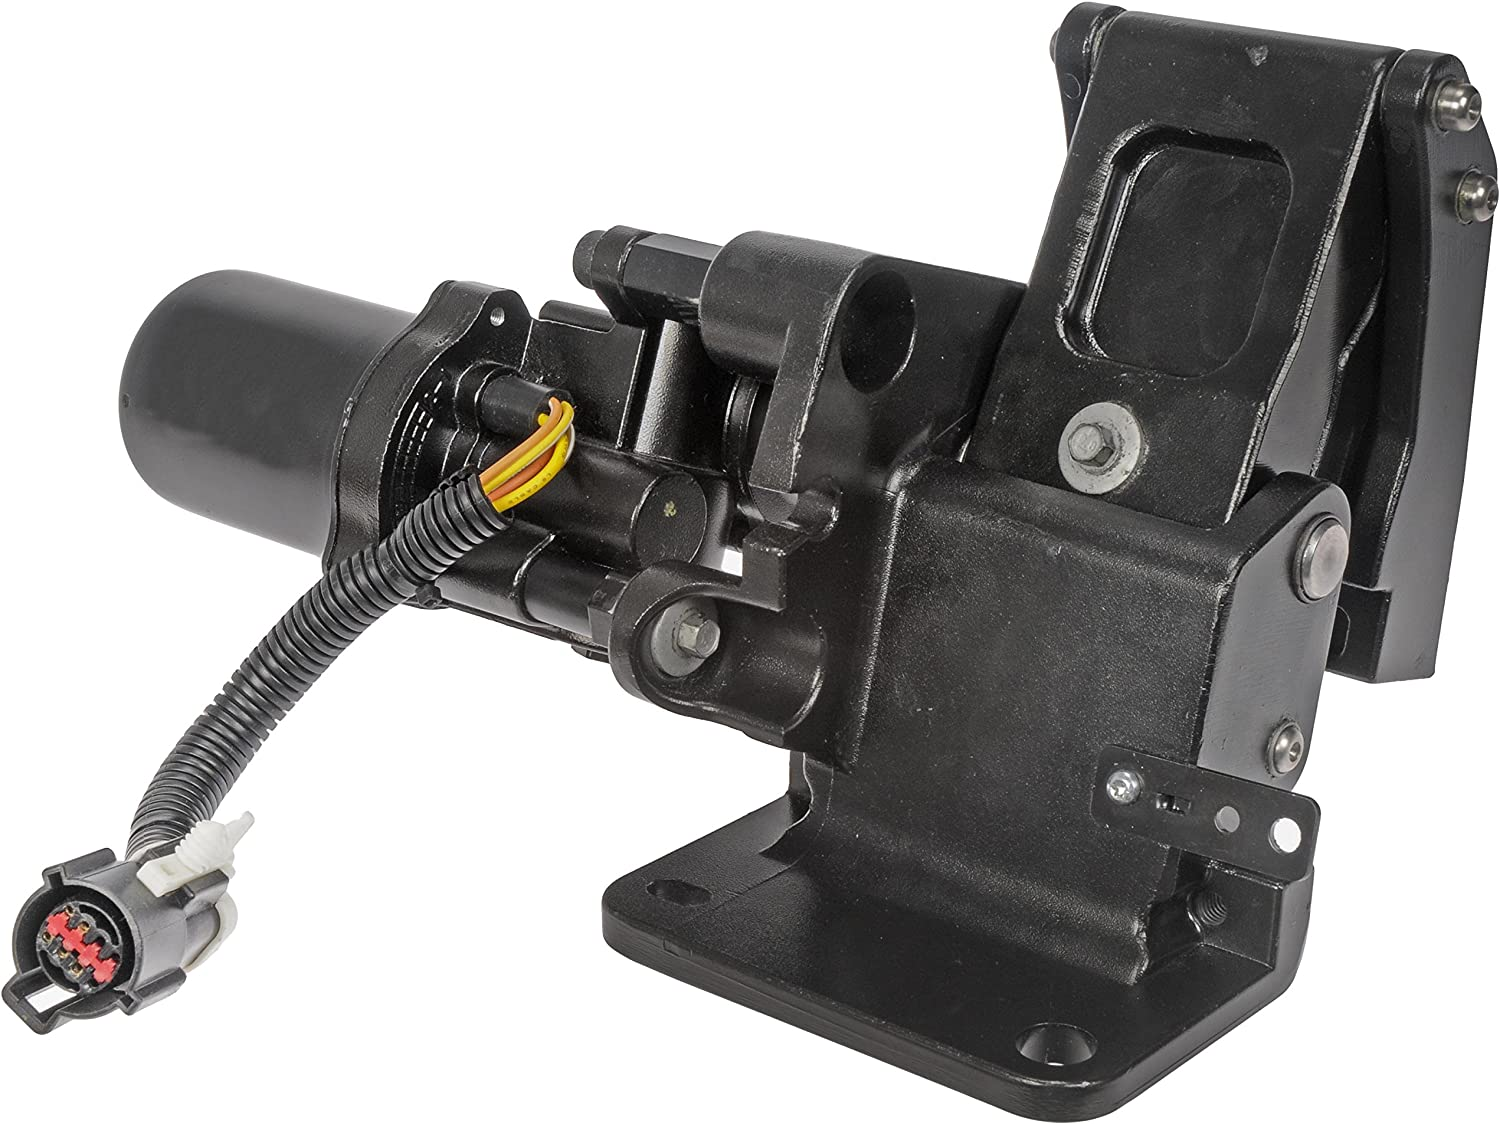 AL3Z16A507A Power Running Board Motors for Ford F-150 F150 2007-2014 Left Right Side Saihisday AL3Z16A506A